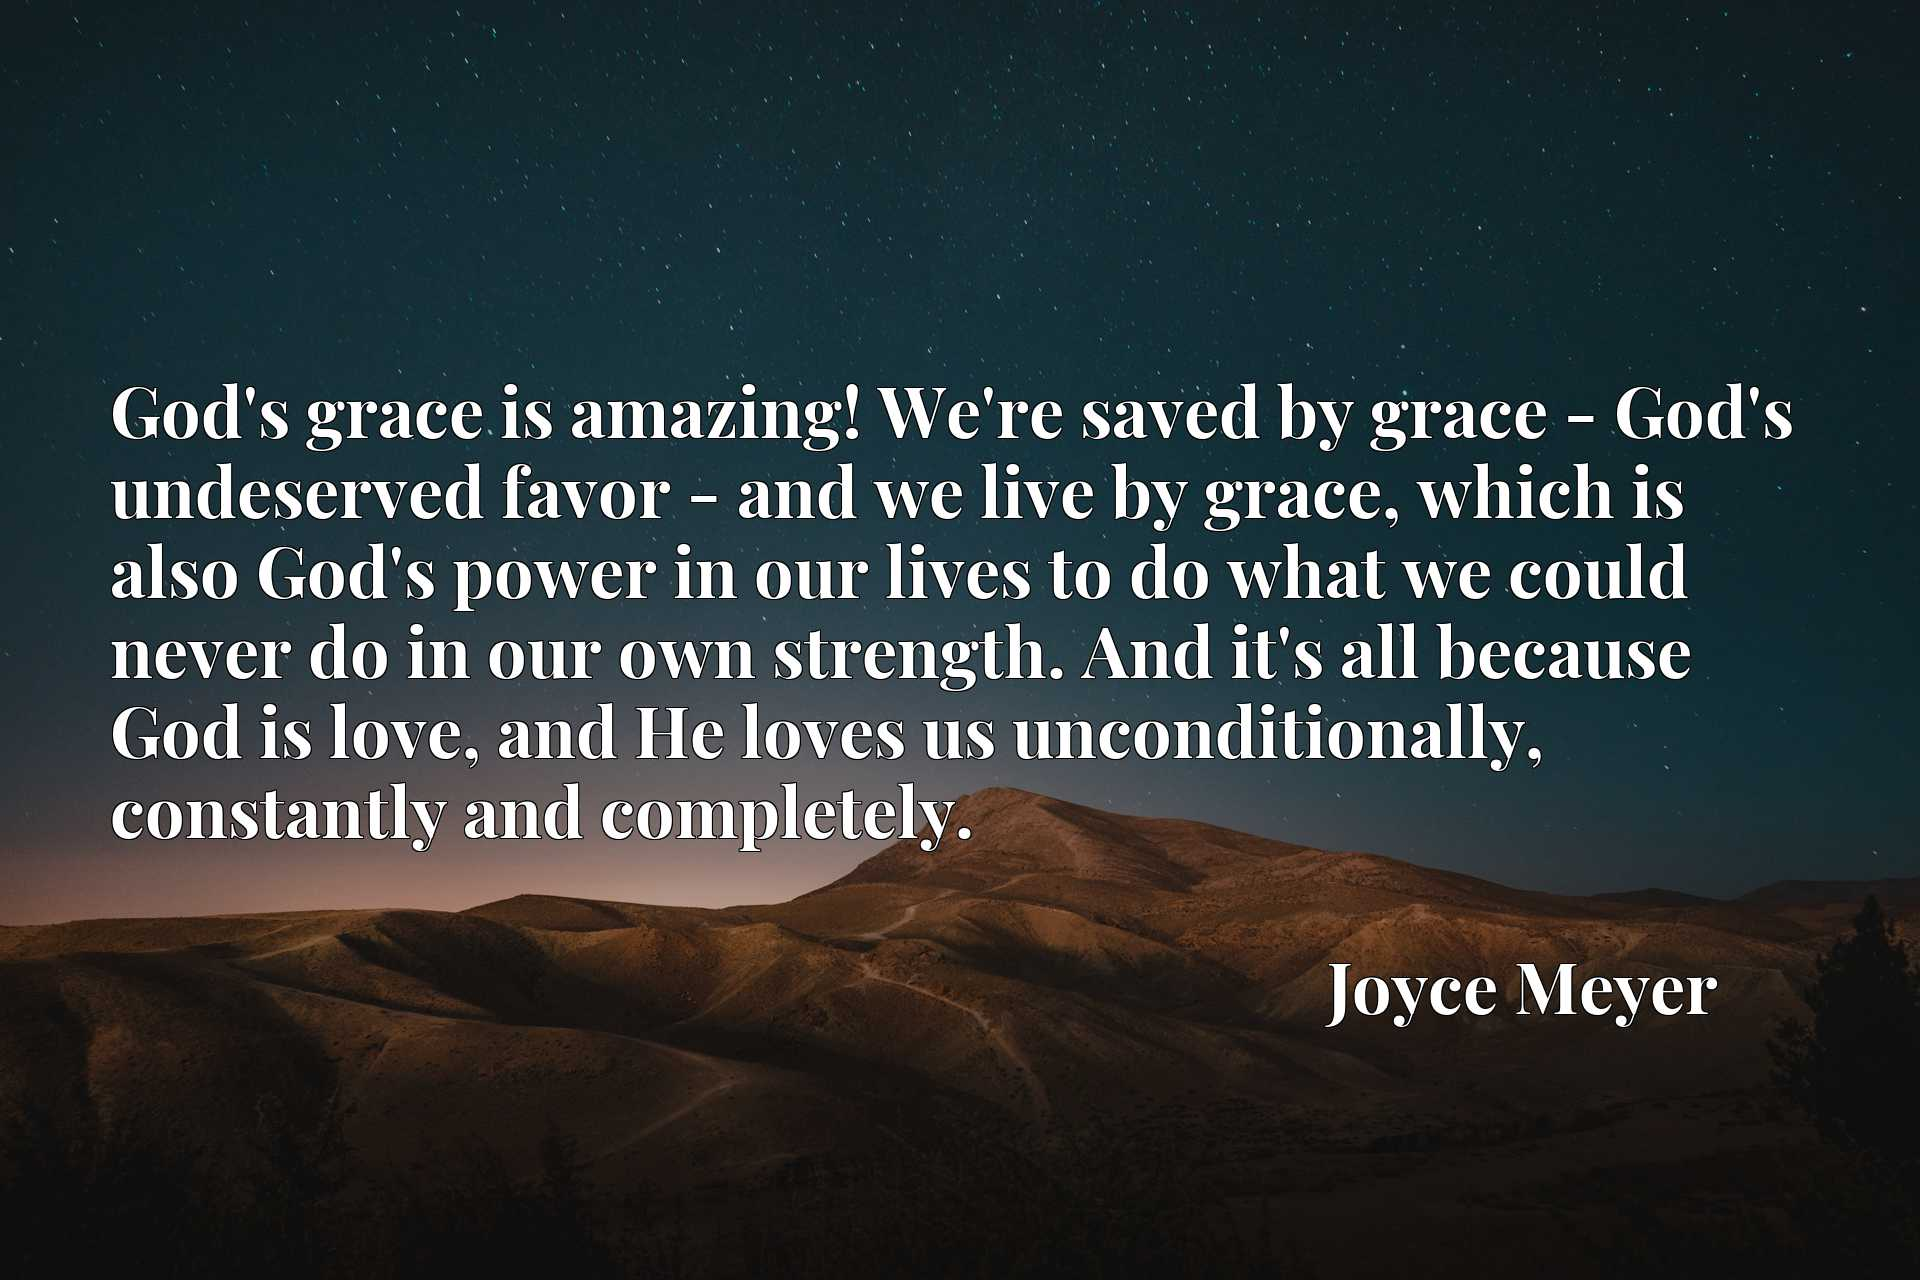 God's grace is amazing! We're saved by grace - God's undeserved favor - and we live by grace, which is also God's power in our lives to do what we could never do in our own strength. And it's all because God is love, and He loves us unconditionally, constantly and completely.